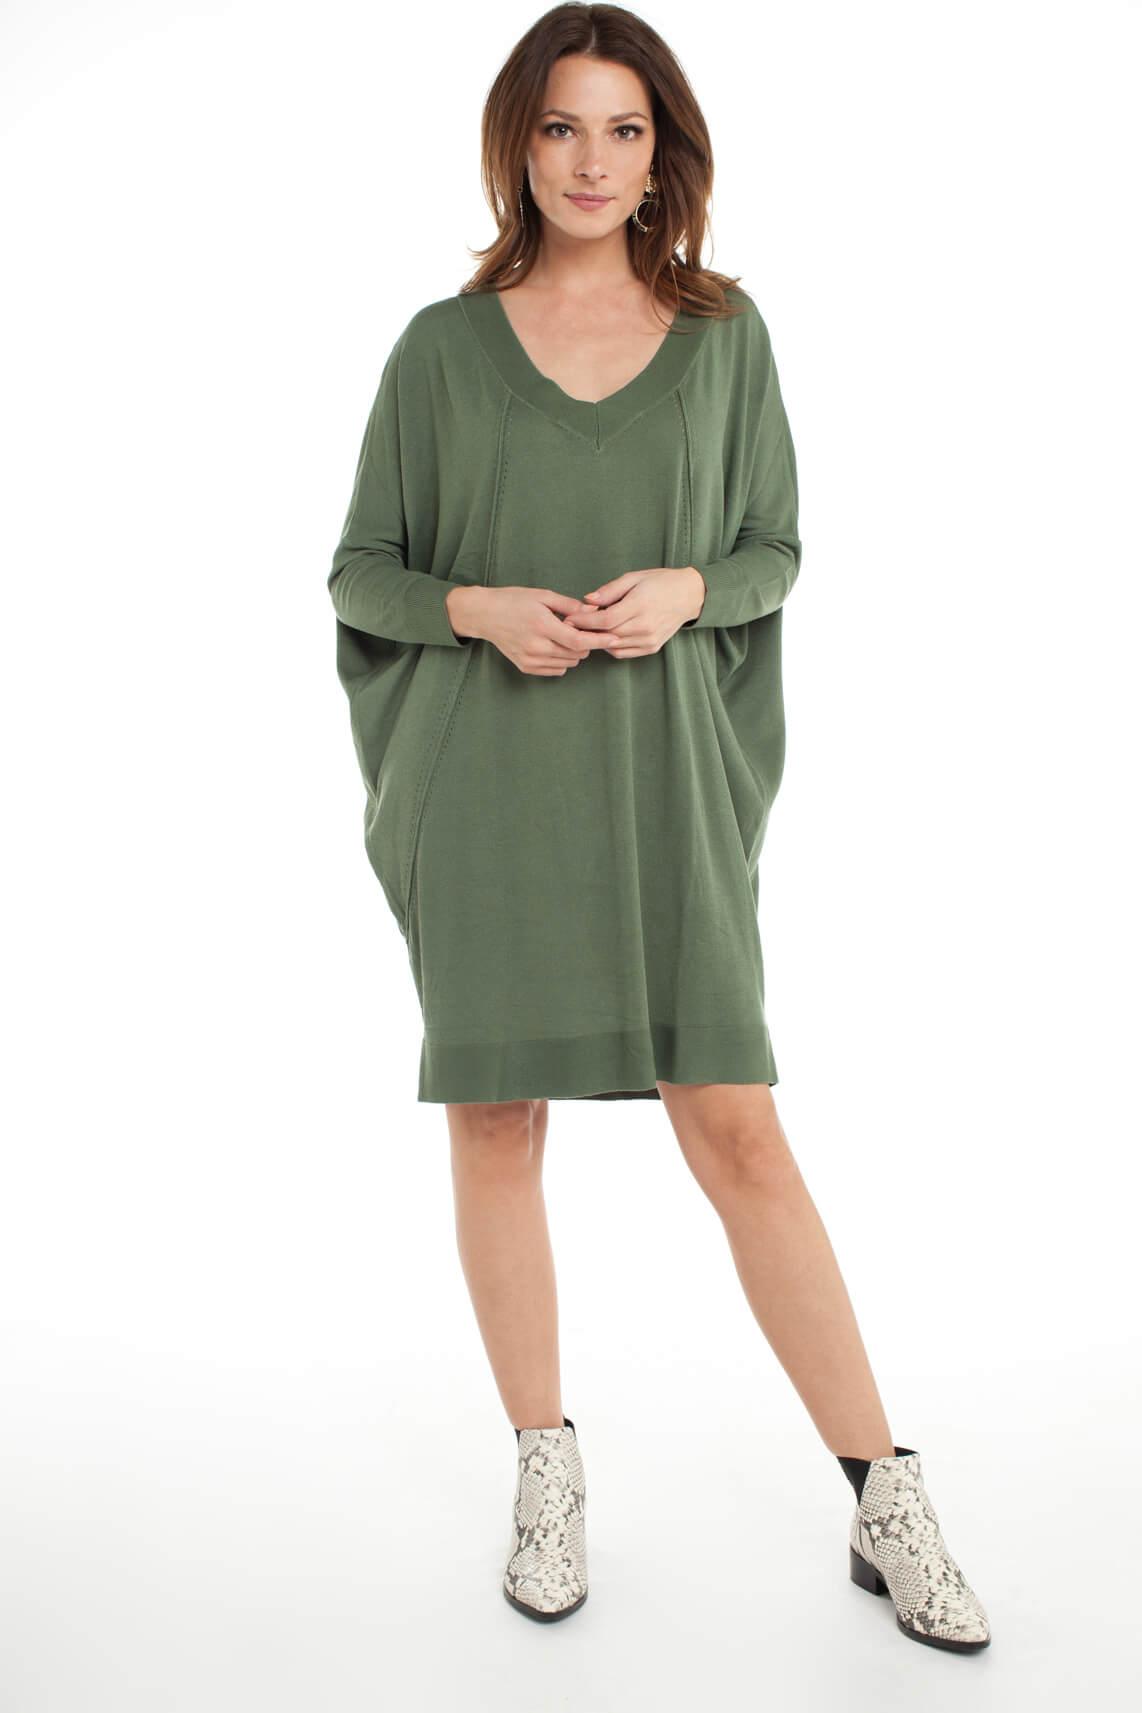 Alix The Label Dames Oversized jurk groen